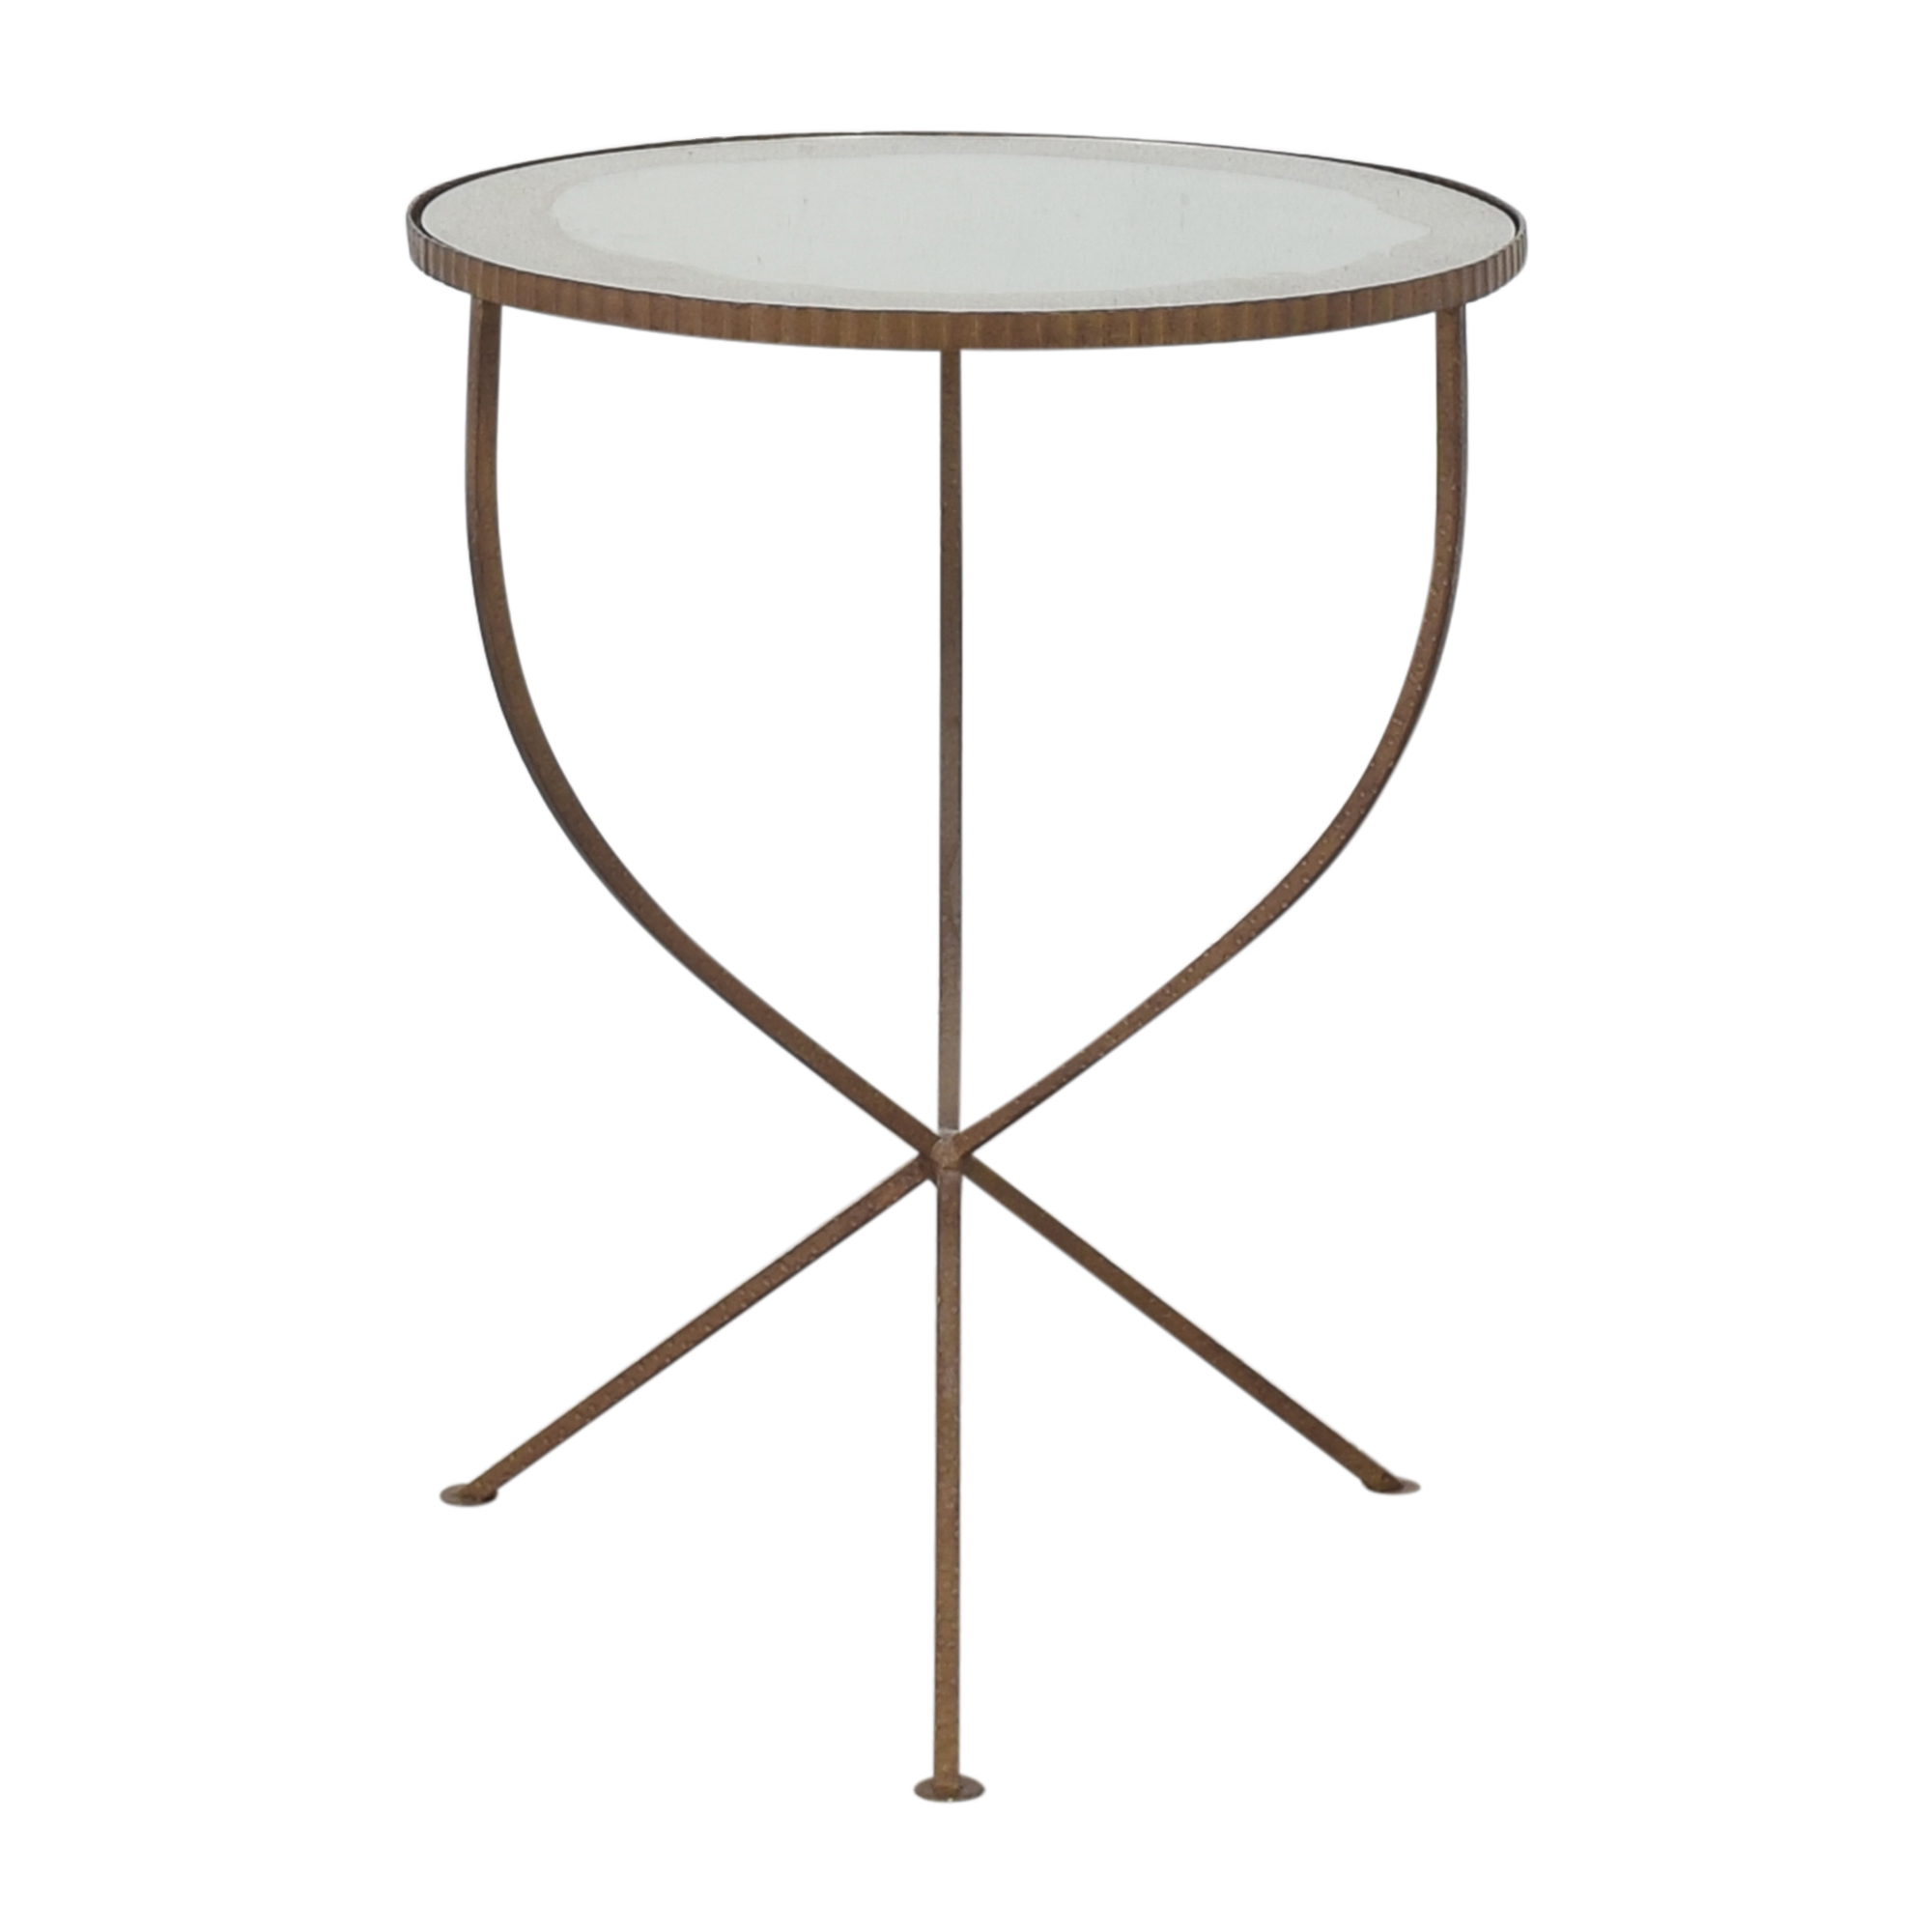 Crate & Barrel Crate & Barrel Round Coffee Table ma